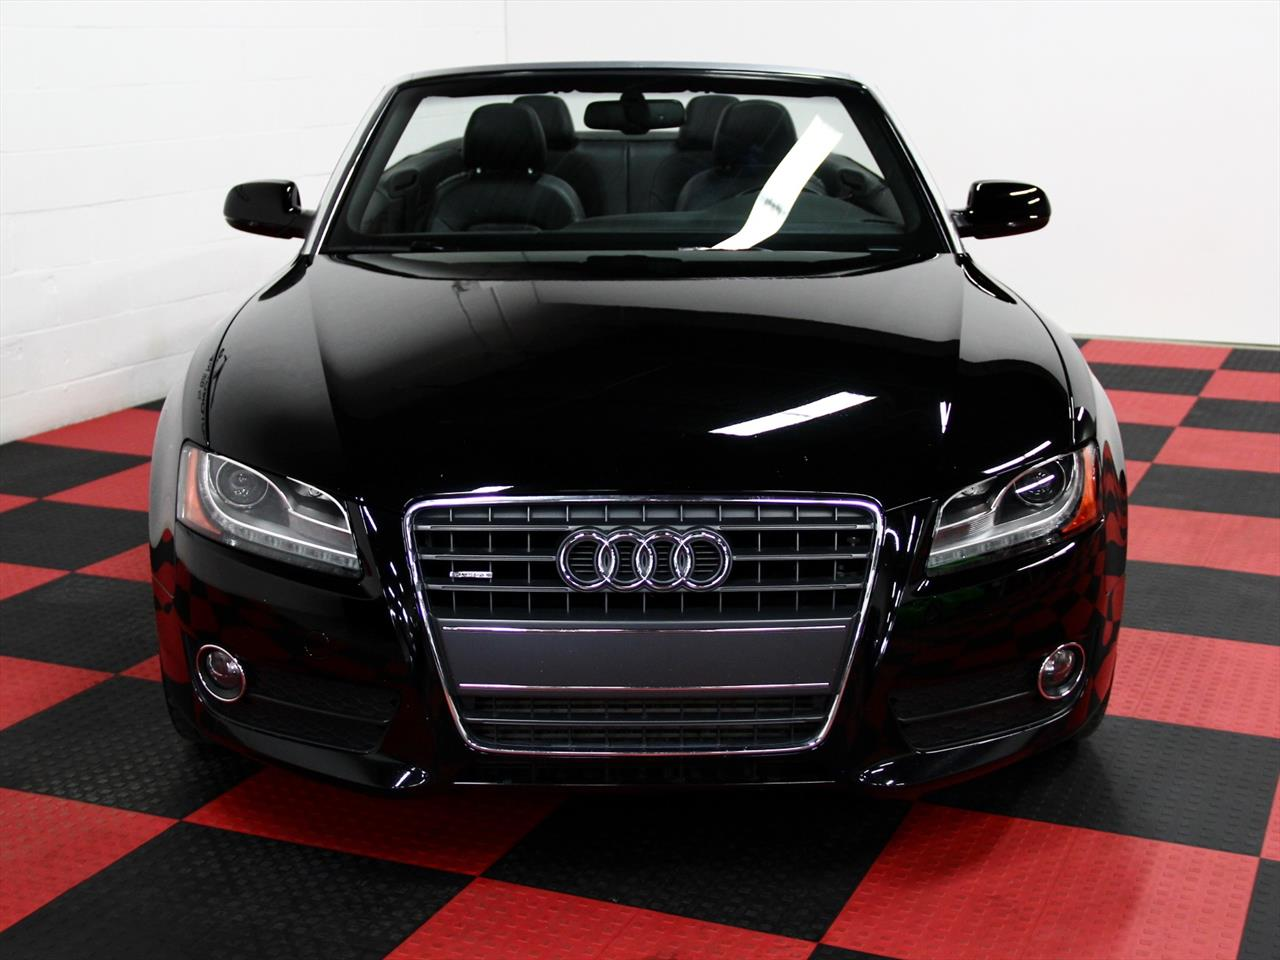 2012 audi a5 2 0 tfsi quattro cabriolet. Black Bedroom Furniture Sets. Home Design Ideas